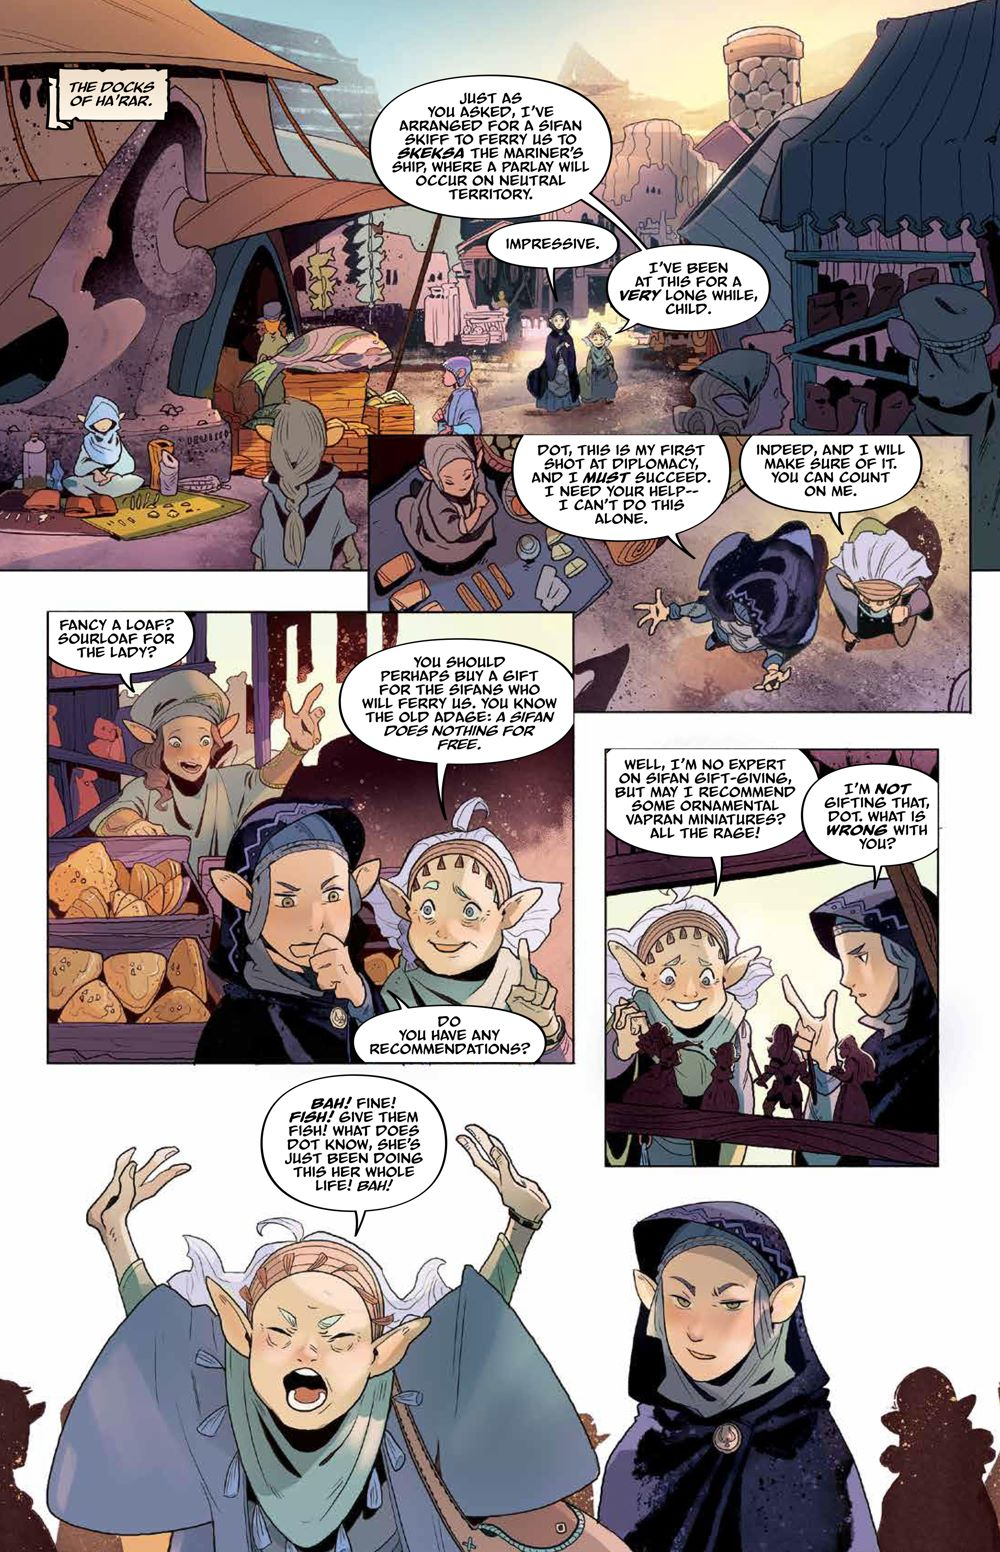 DarkCrystal_AgeResistance_v3_Journey_PRESS_20 ComicList Previews: JIM HENSON'S THE DARK CRYSTAL AGE OF RESISTANCE VOLUME 3 THE JOURNEY INTO THE MONDO LEVIADIN HC